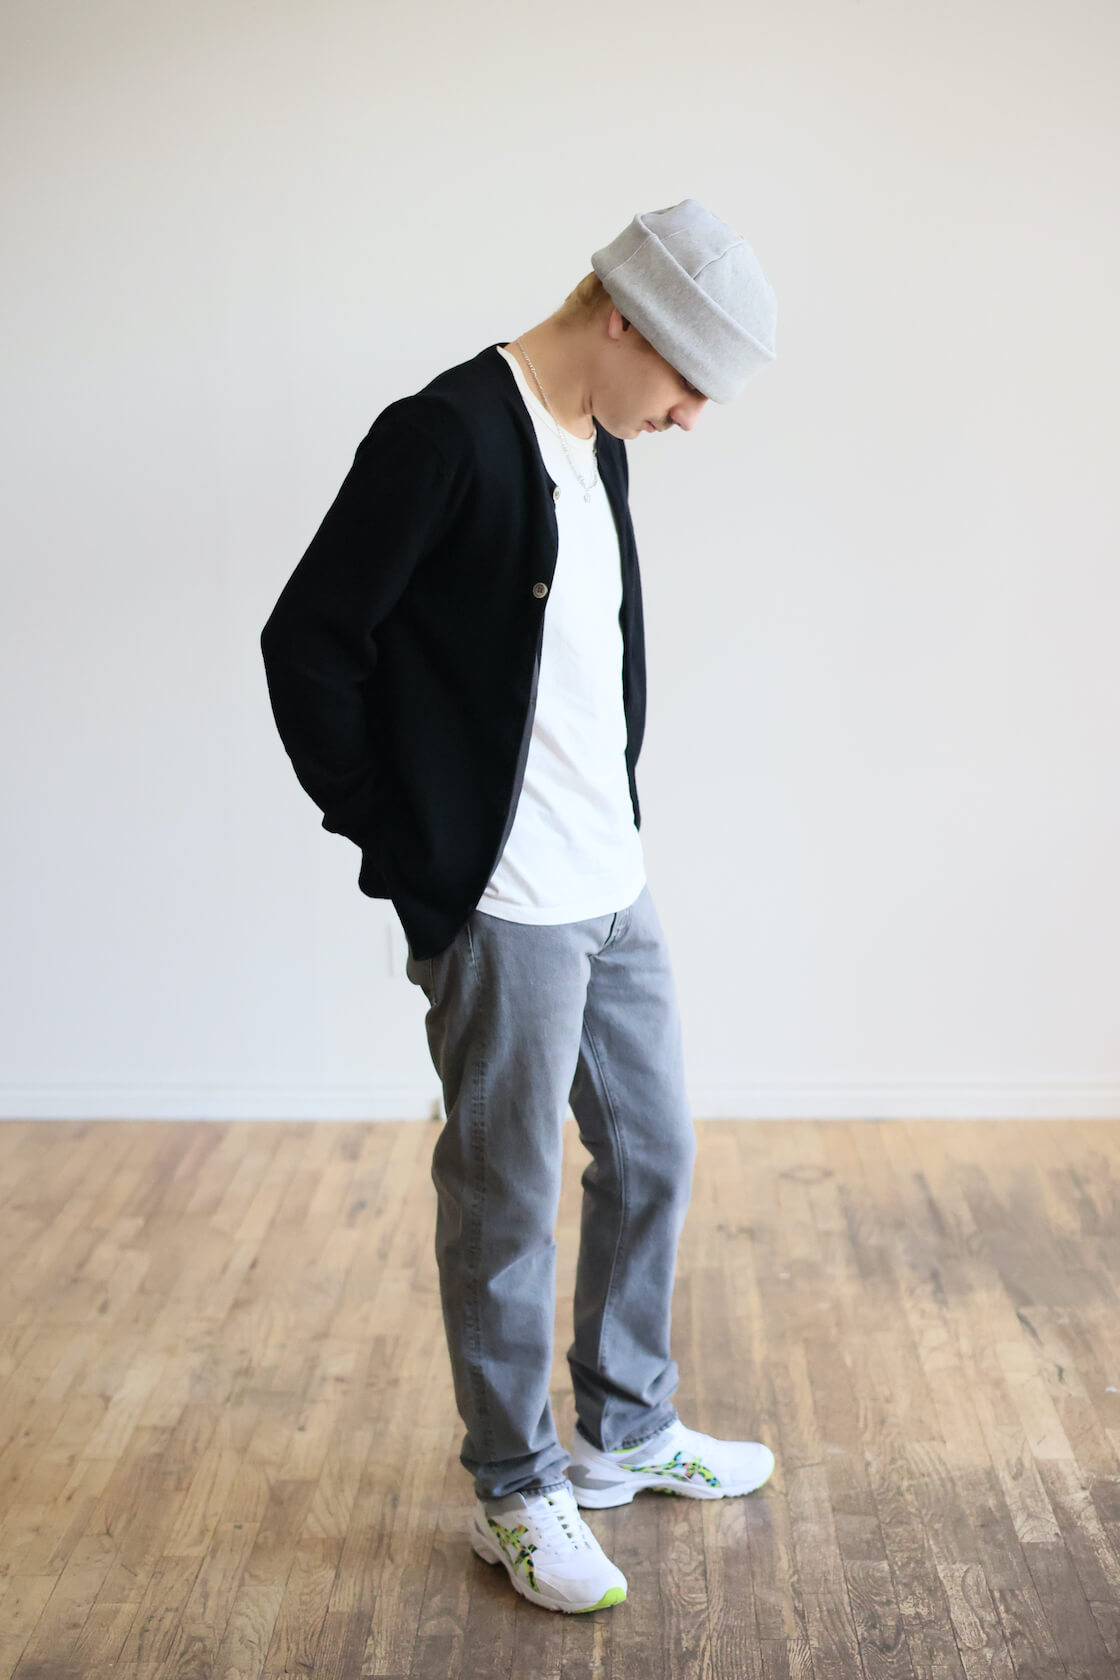 cableami 30/7 sweat cap, comme des garcons shirt crewneck cardigan, orslow 107 ivy denim, and cdg shirt x asics tarther sneakers on body